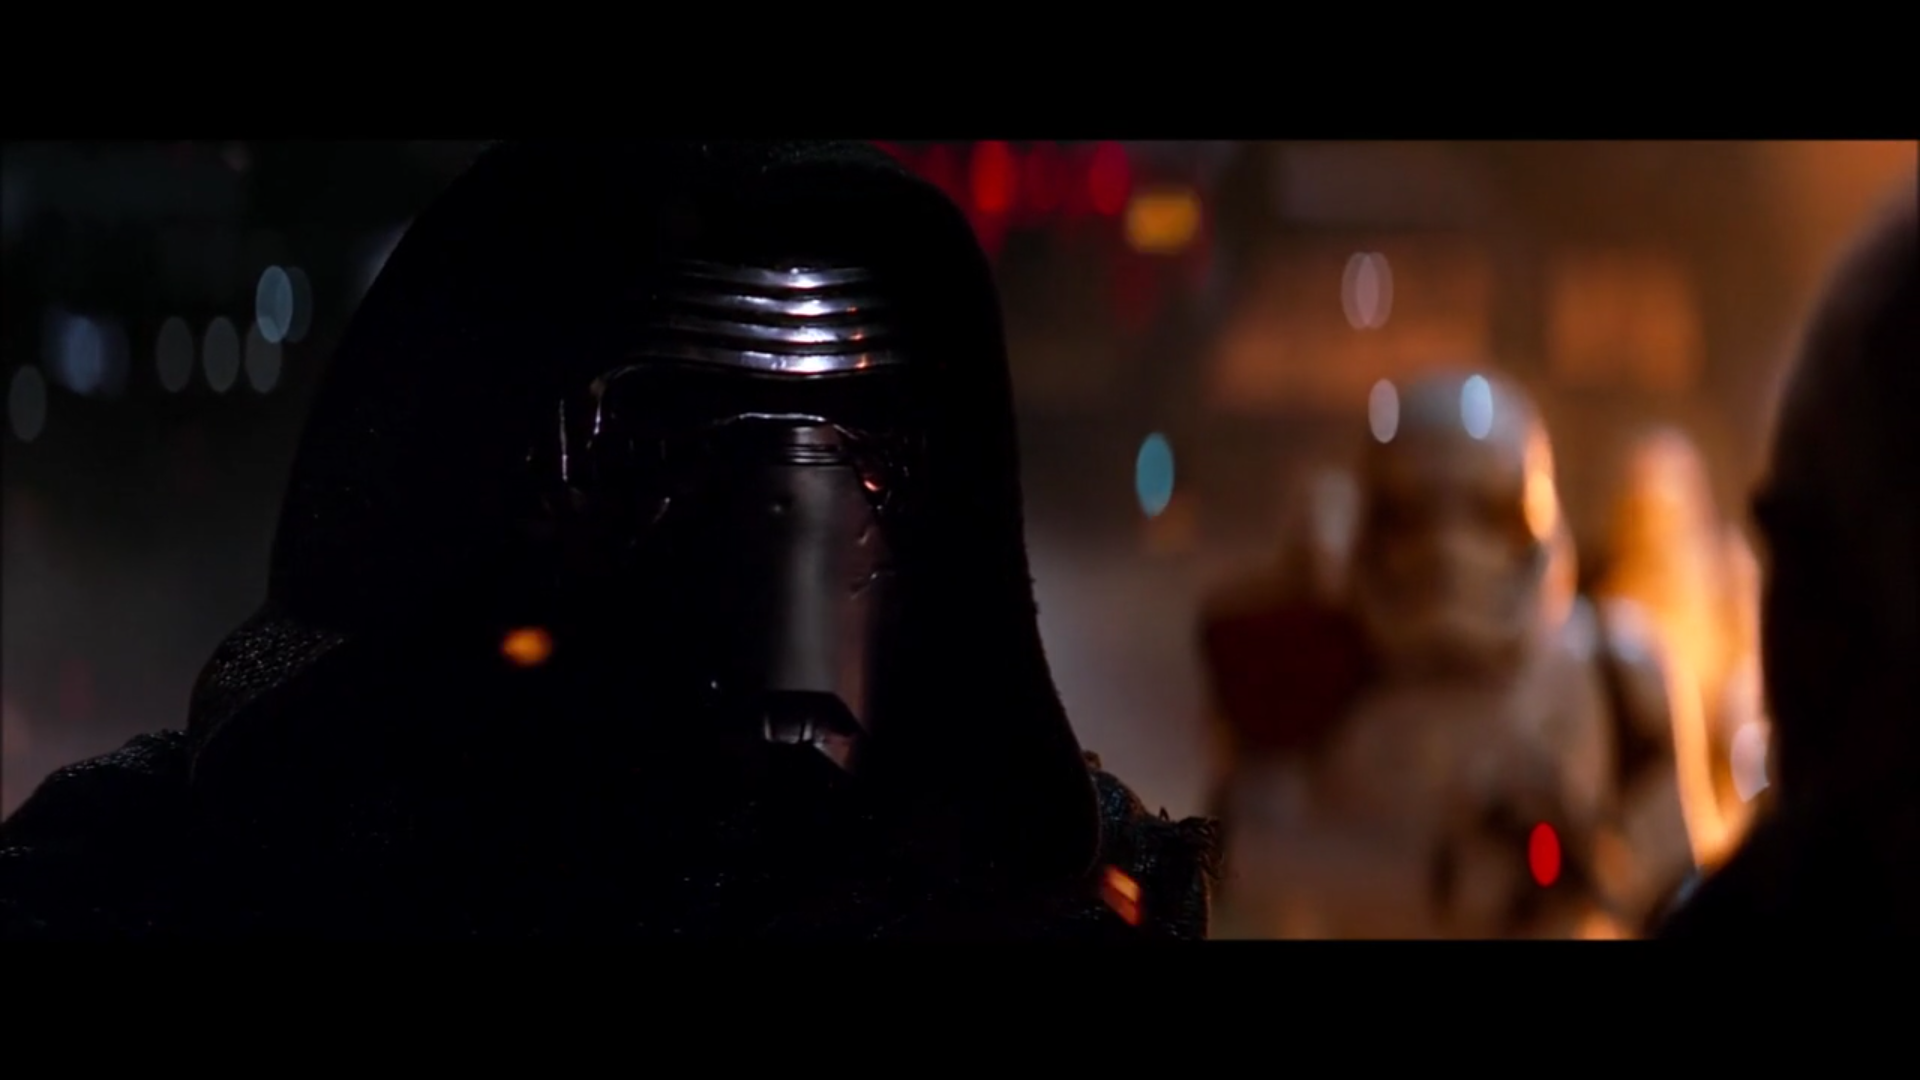 The Dark Side Of 'The Force Awakens' Is Here